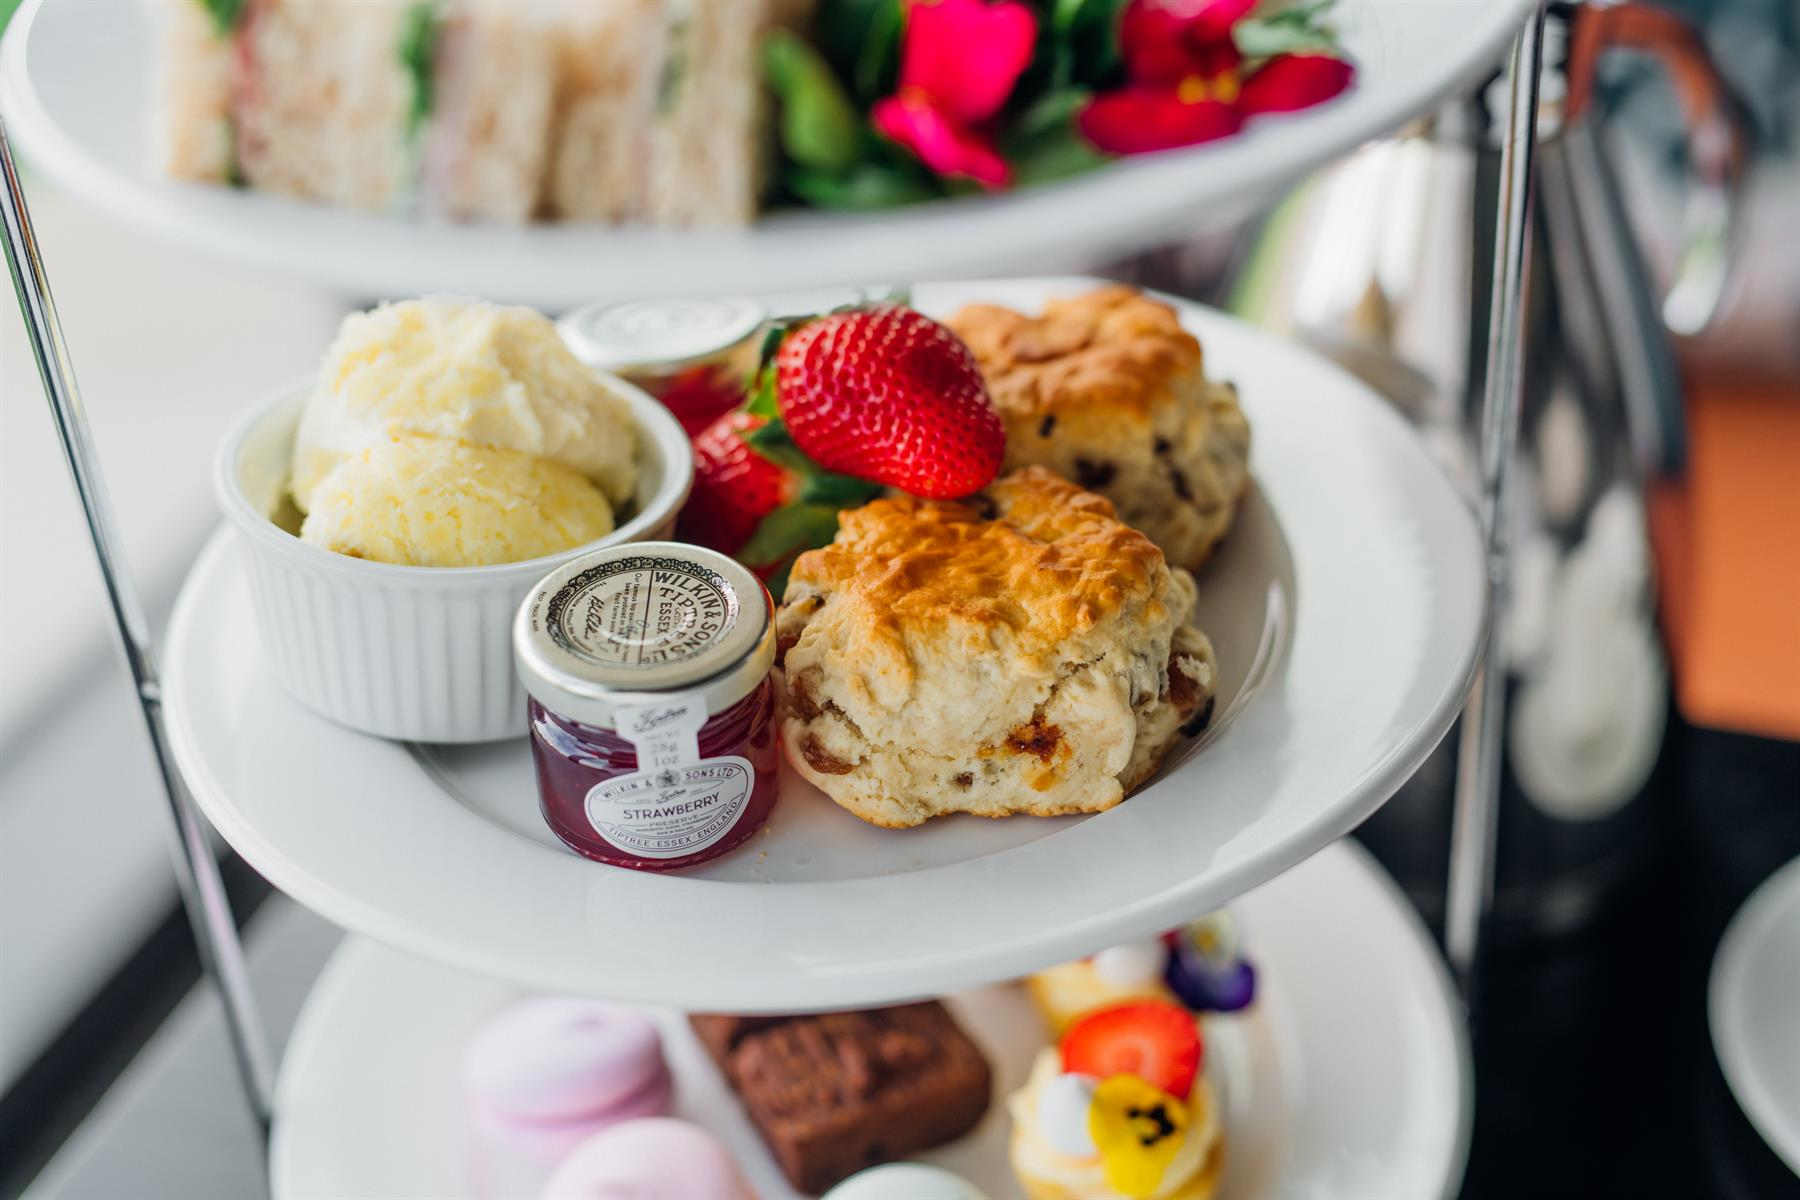 Image of an afternoon tea